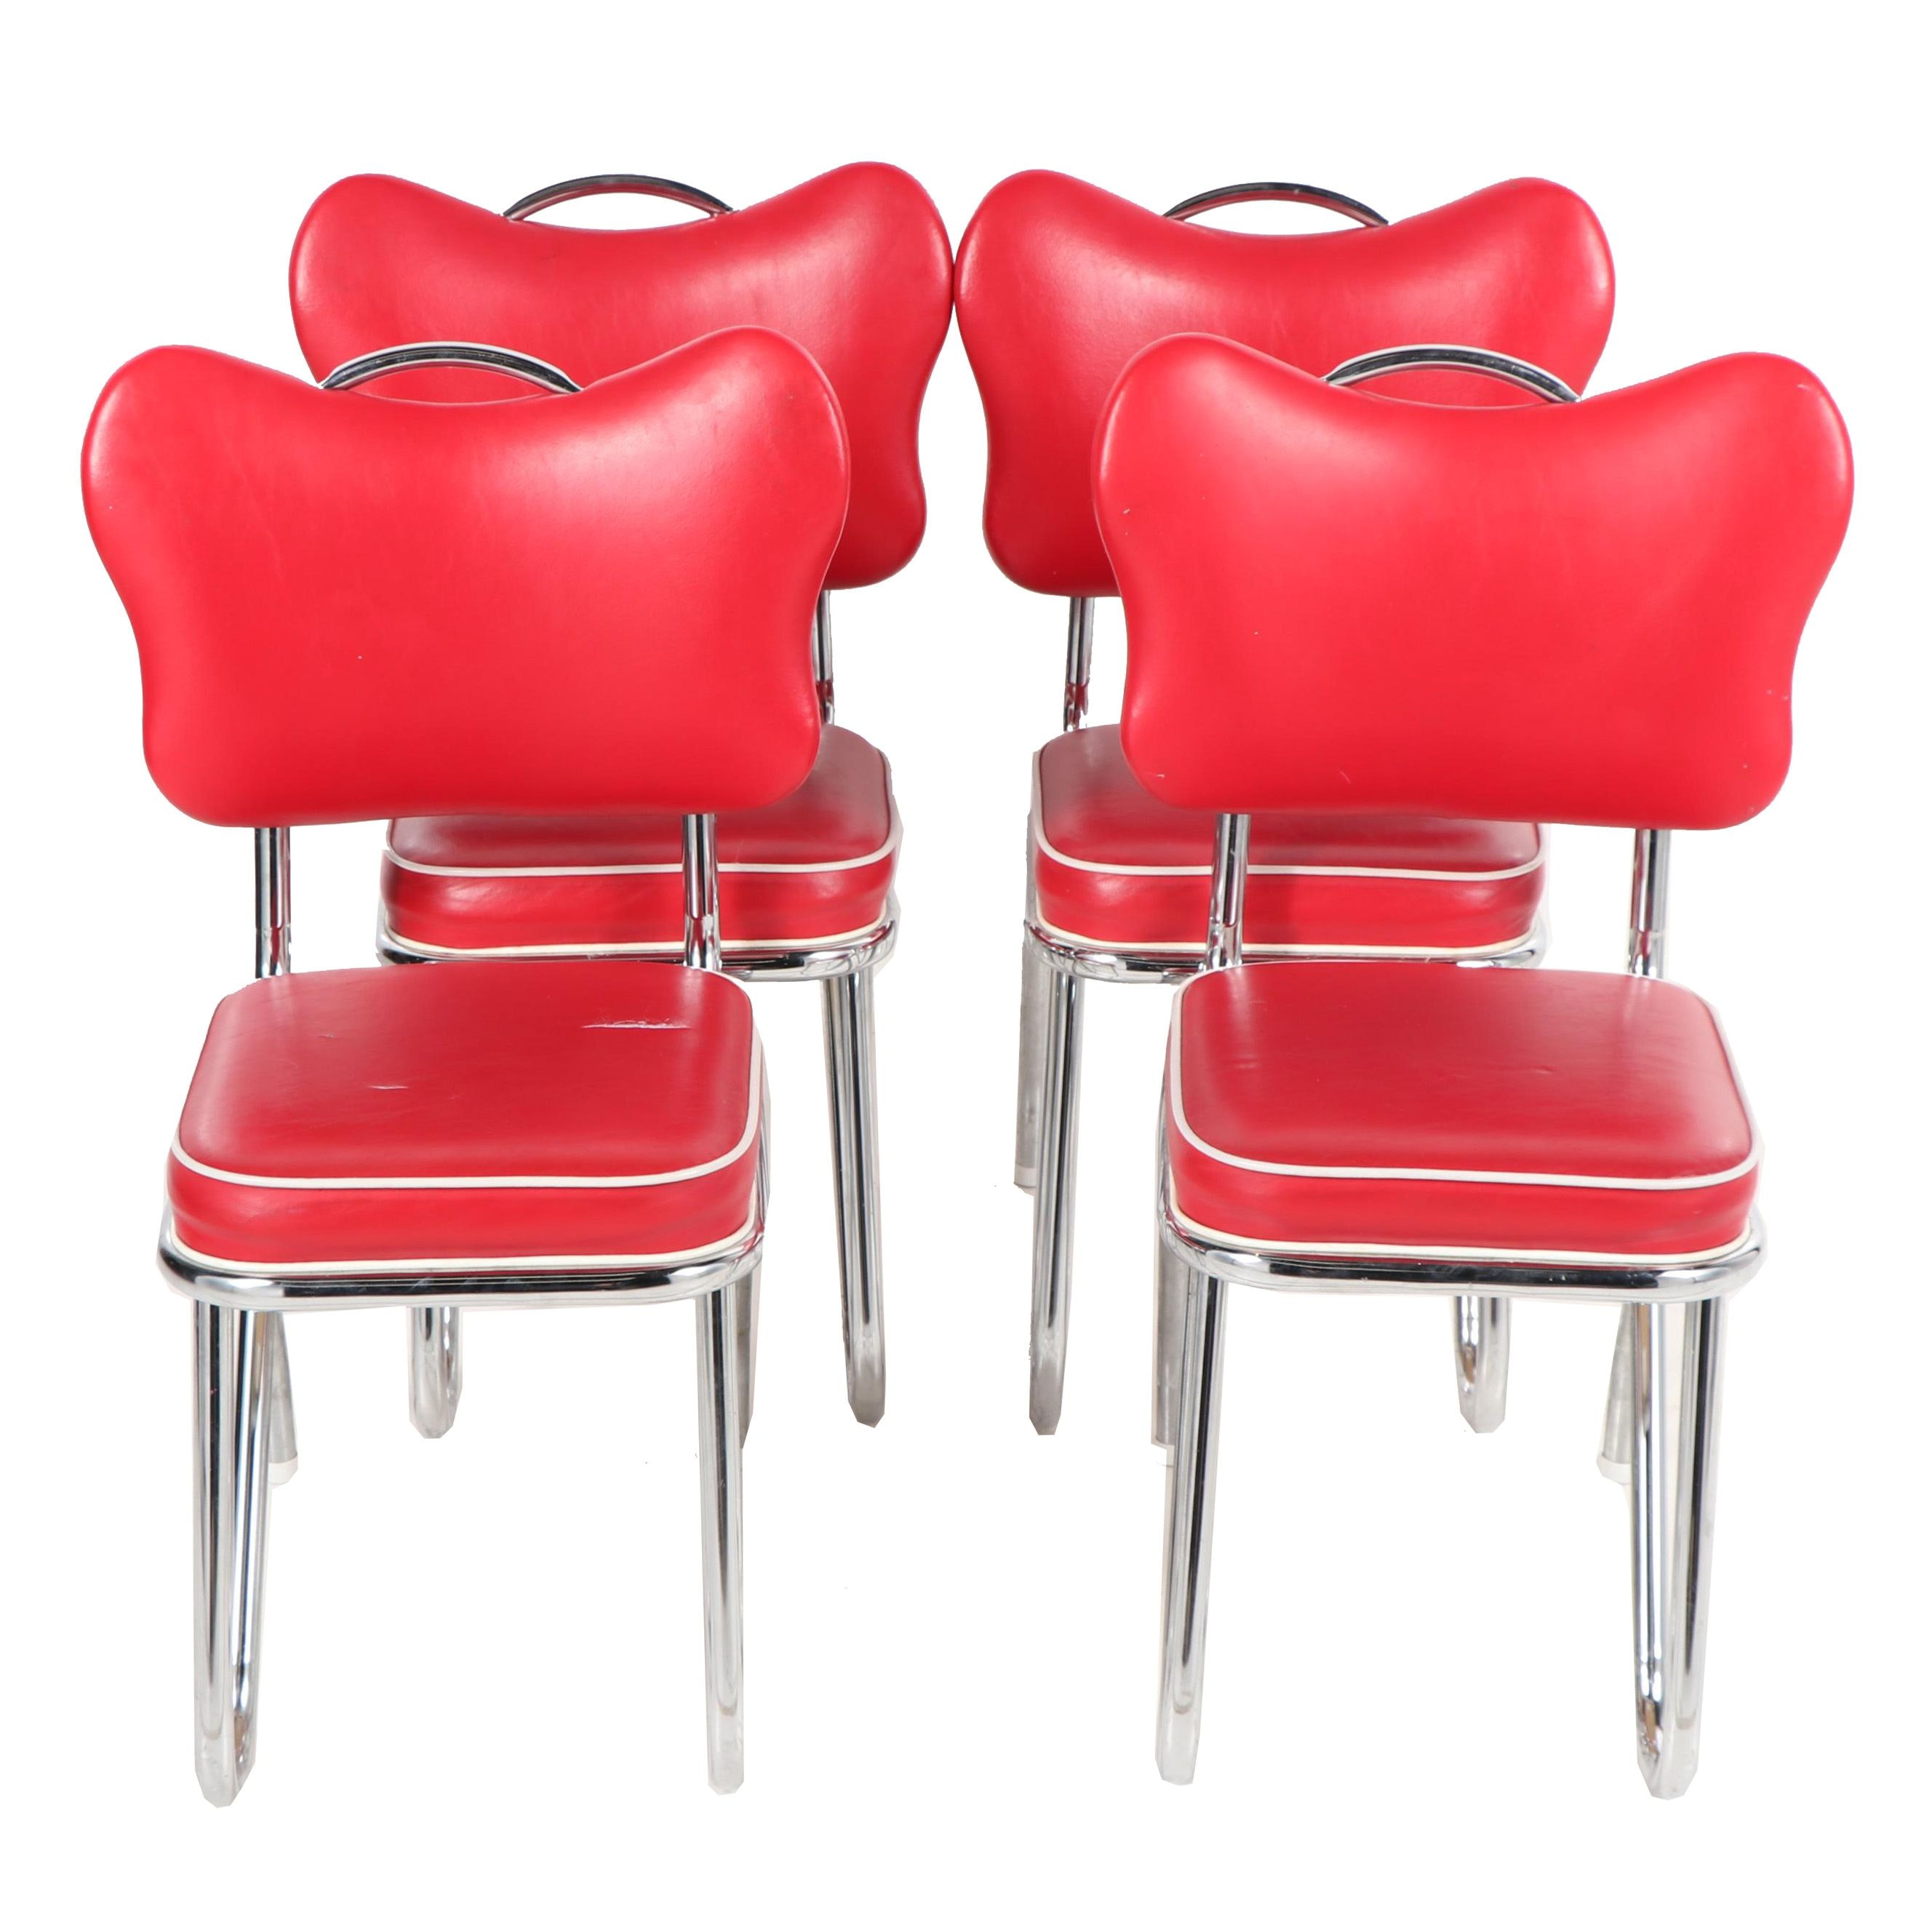 Mid Century Modern Style Vinyl and Chrome Diner Chairs by Daystrom, 20th Century